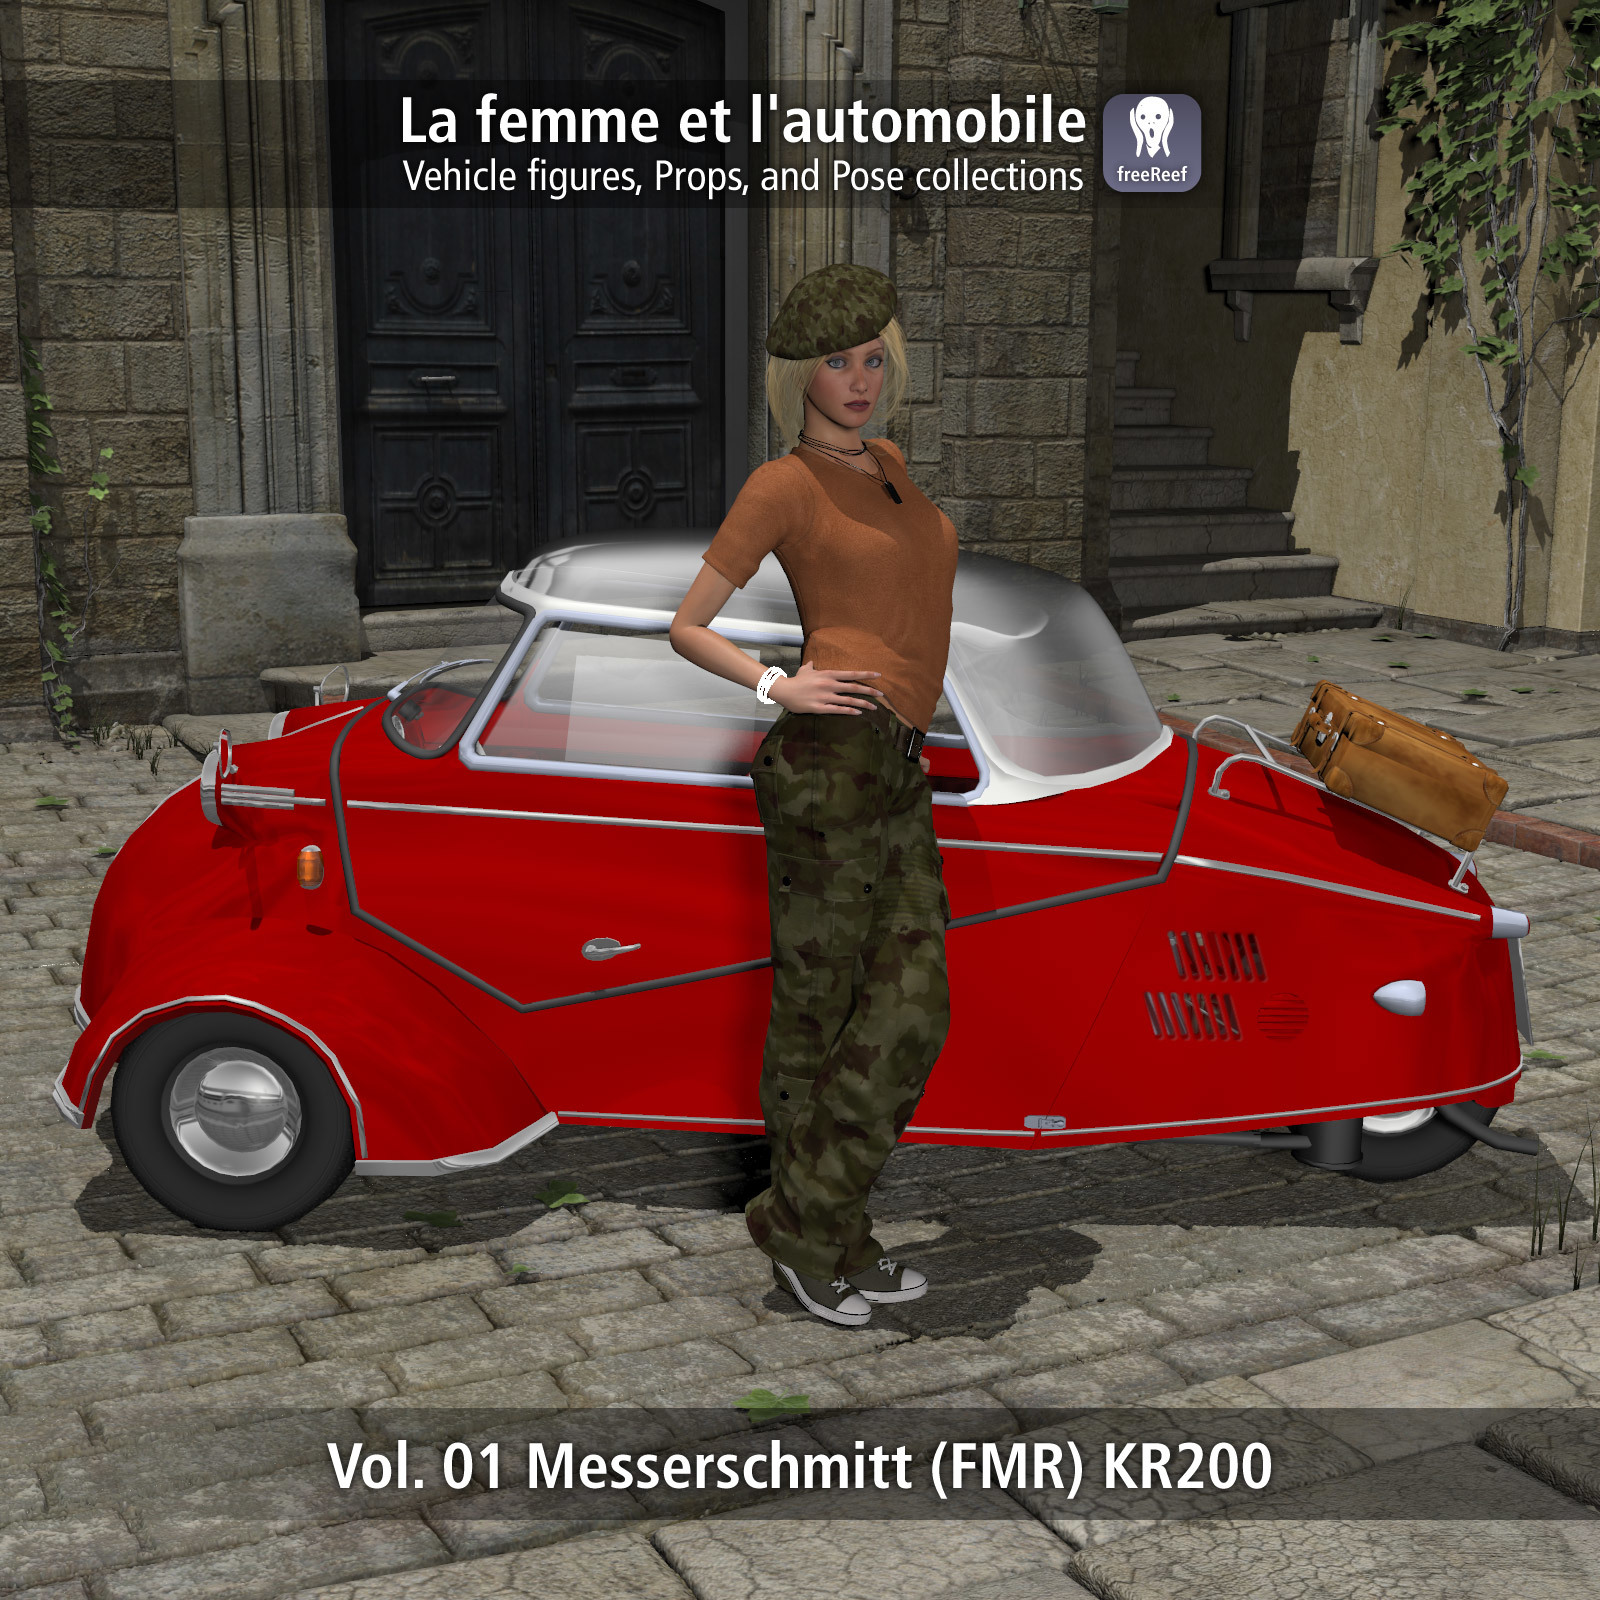 La Femme et l'automobile 01 by freeReef